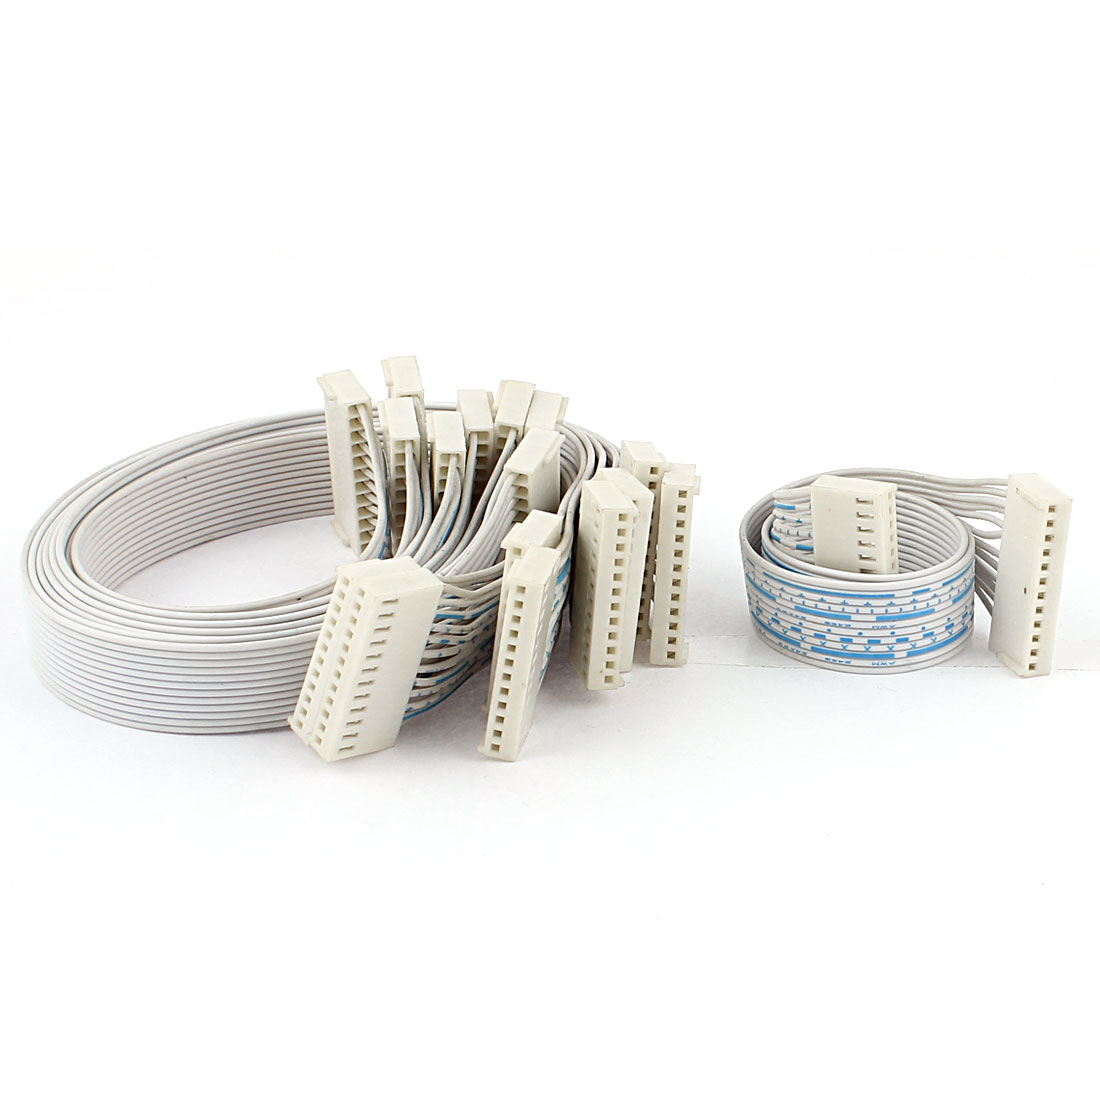 9Pcs 2.54mm Pitch 12 Pin 12 Wire 24AWG Female IDC Flat Ribbon Cable 31cm